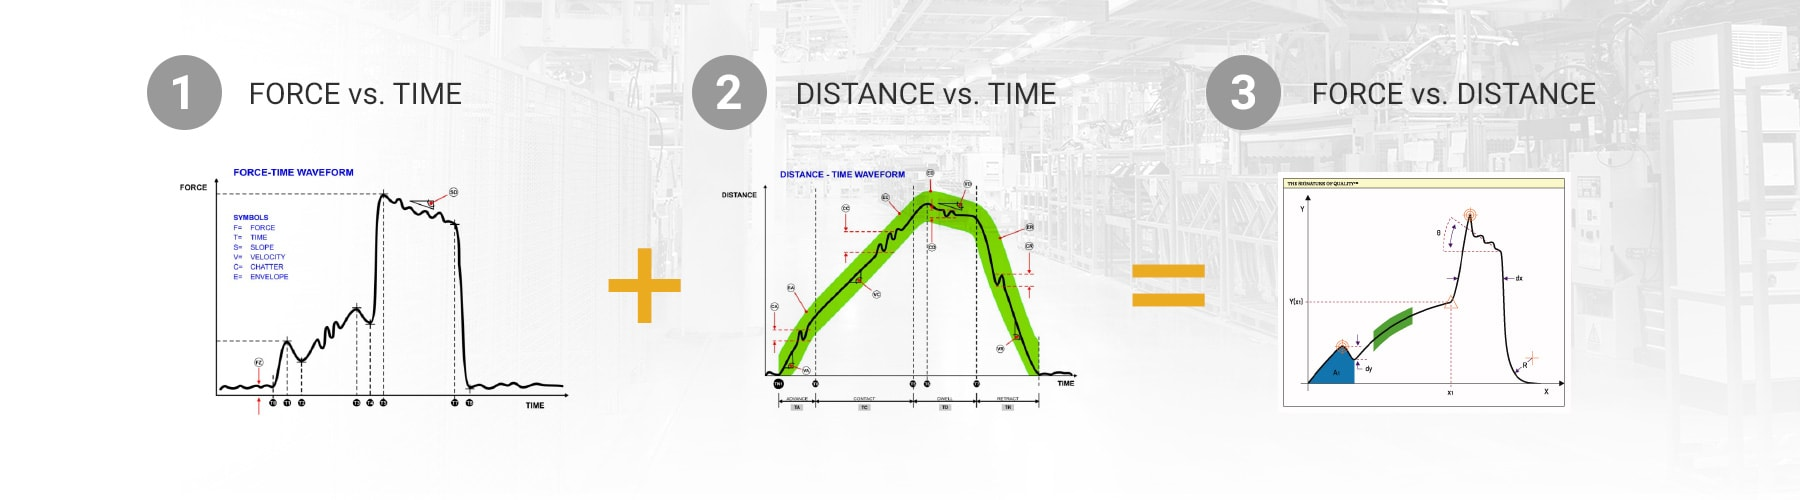 Press-Fit Defect Detection | Press Force Monitoring Solutions